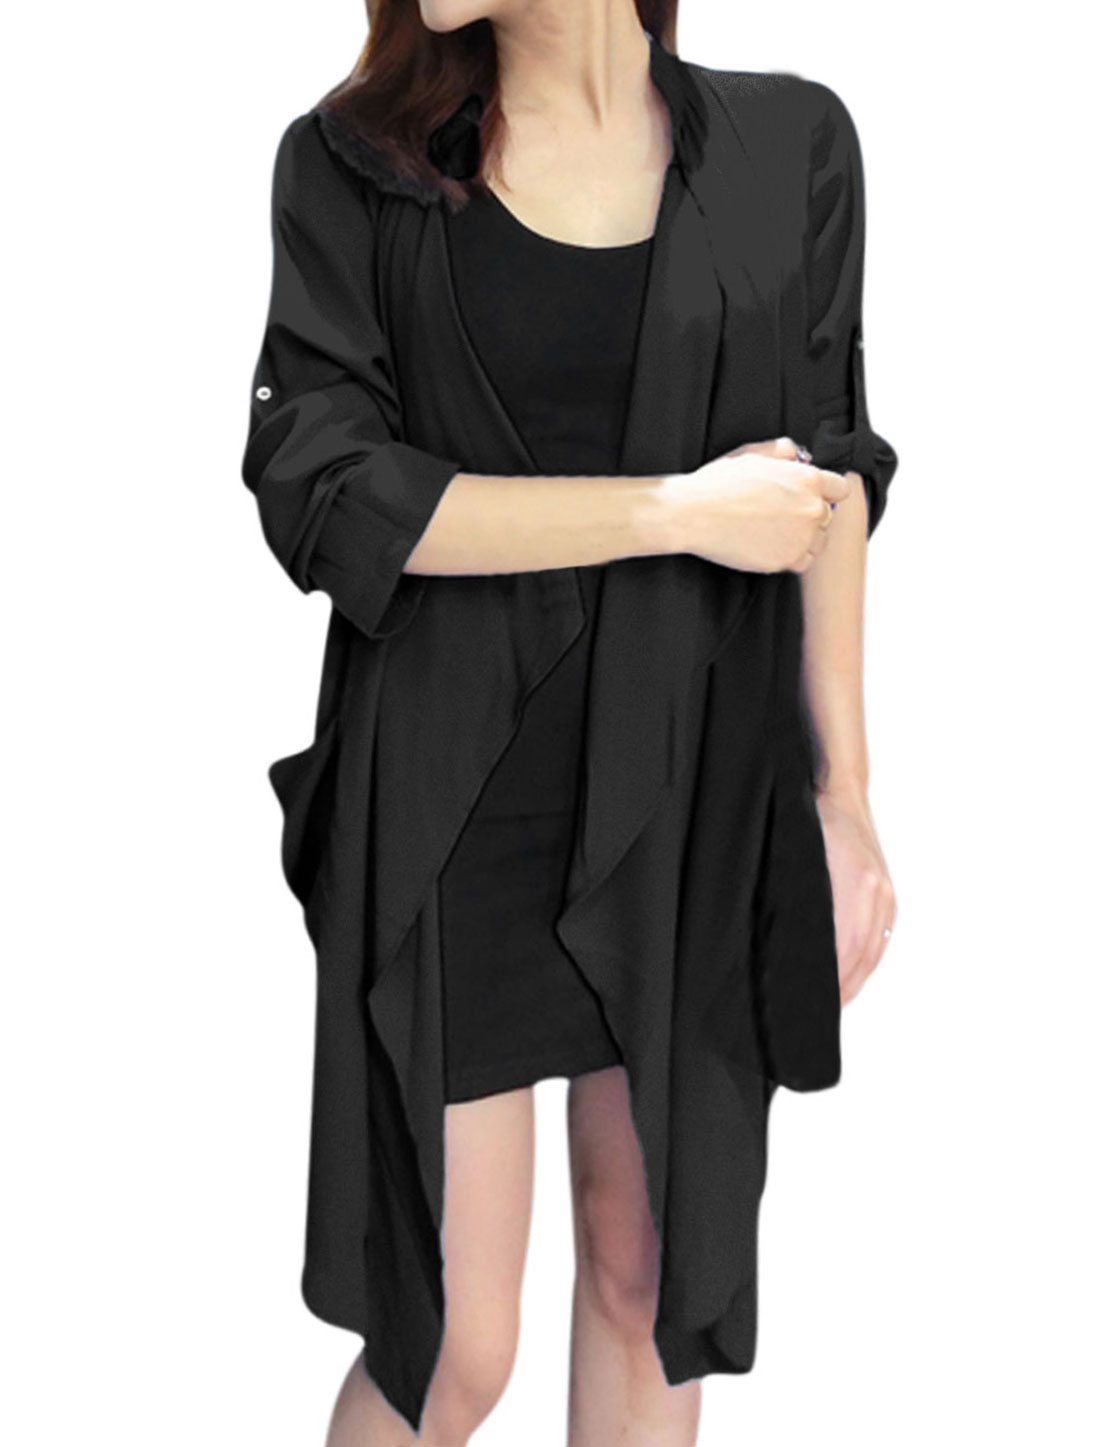 Lady Roll Up Sleeve Open Front Leisure Tunic Cardigan Black S